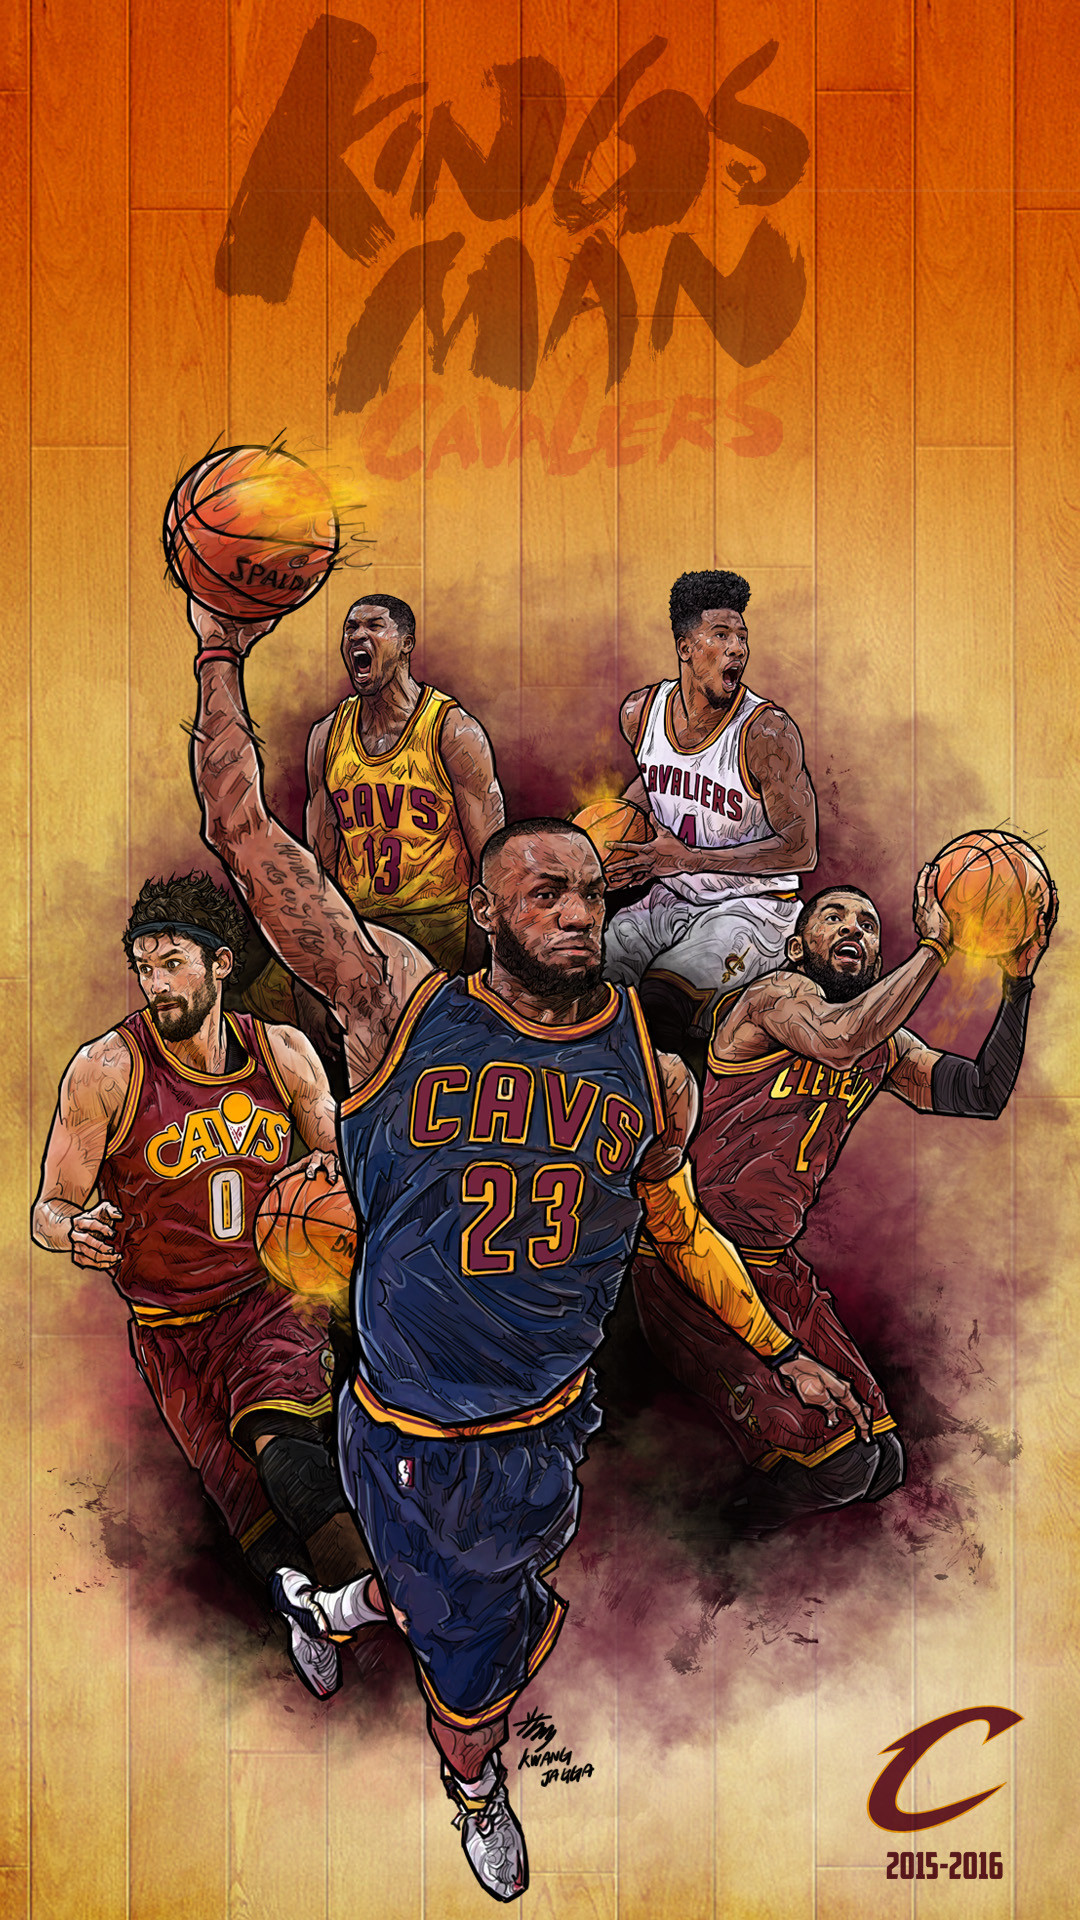 Nike Basketball Wallpaper 2018 50 Images